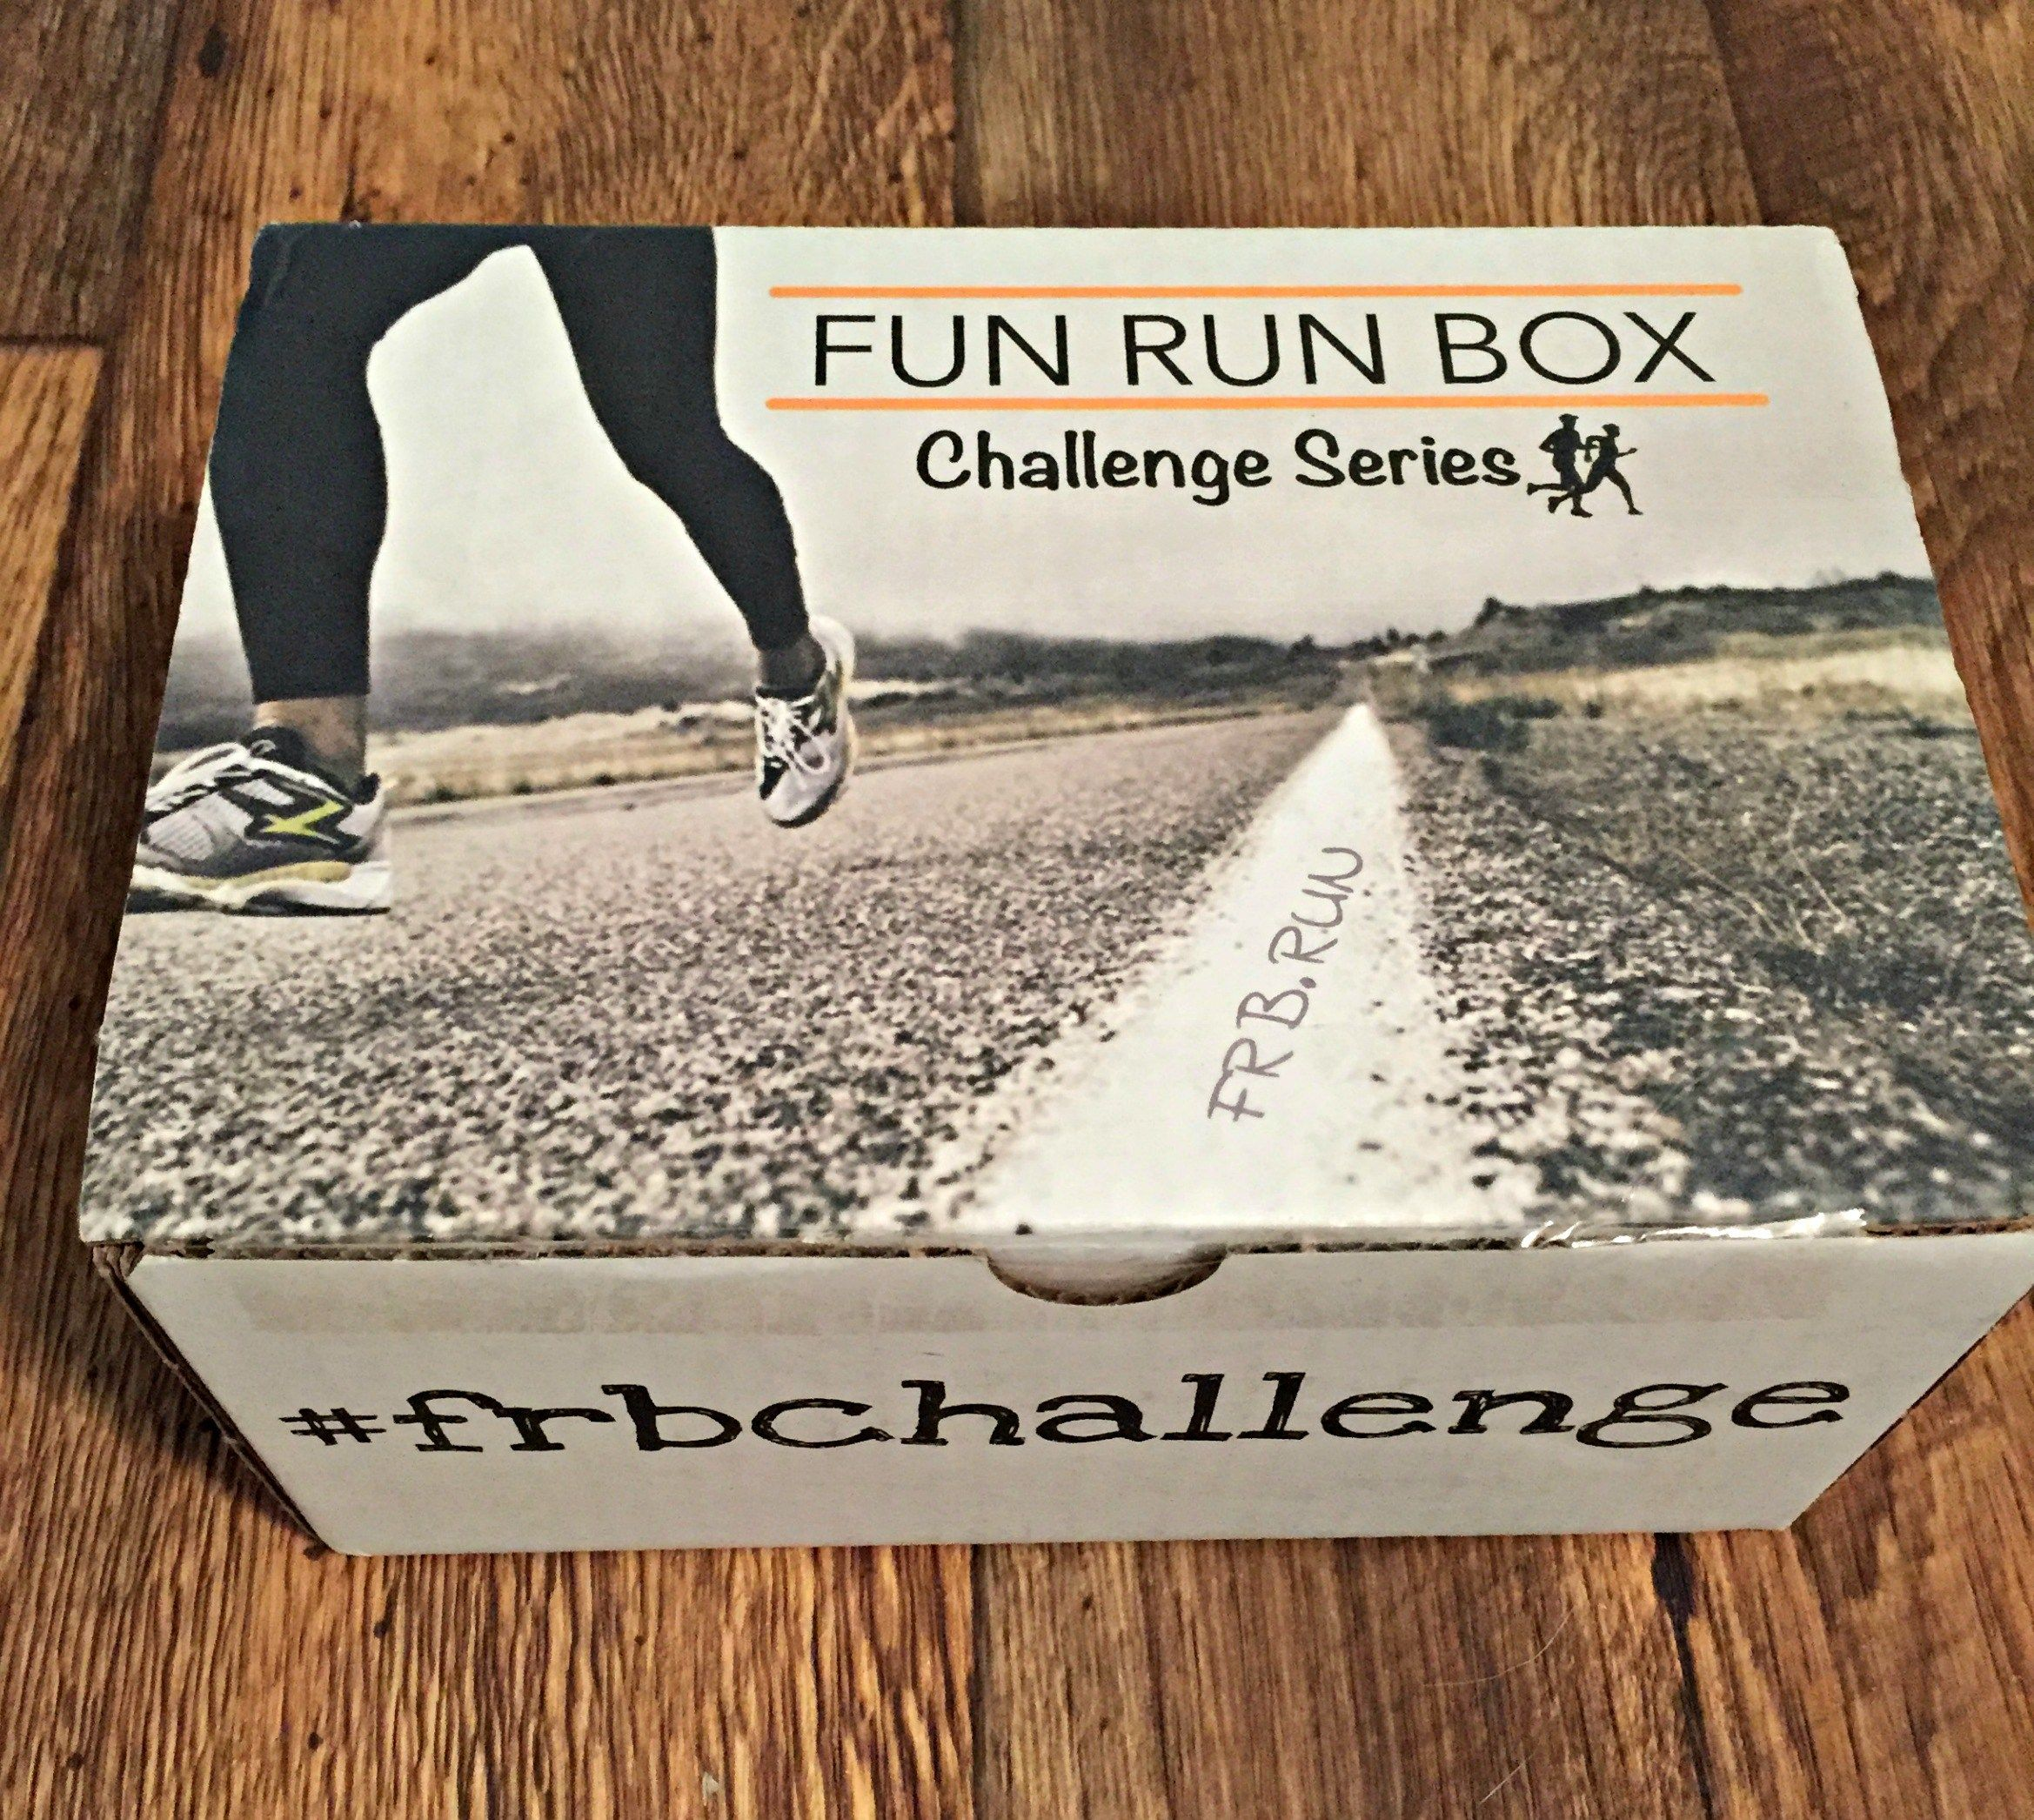 Fun Run Box Subscription box for runners - all the details